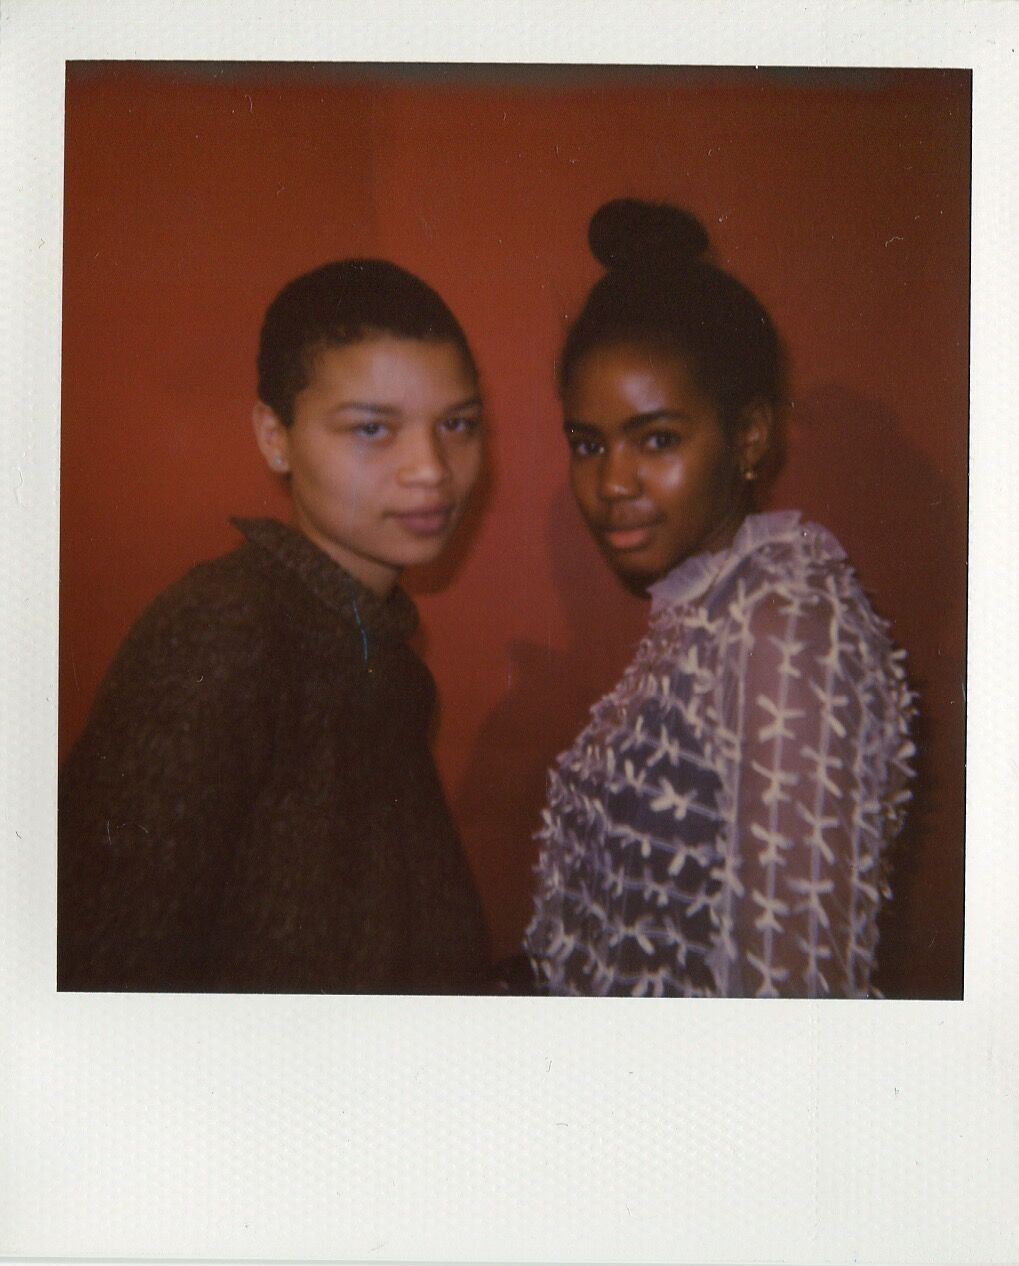 Polychrome Mag is Giving a Voice to Creators of Color - Artsy